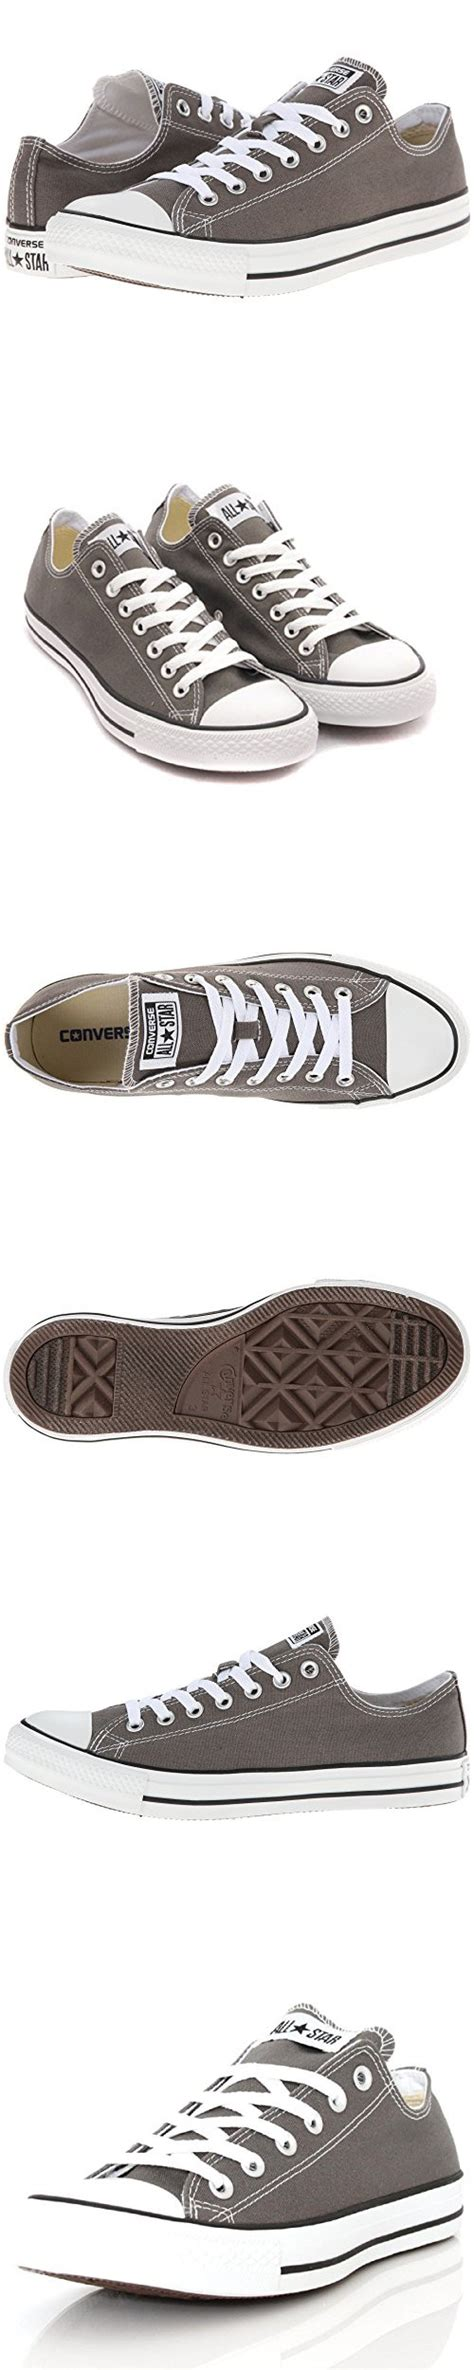 Chuck Taylor All Star Core Oxford Low-top Unisex Gray (size 9 (women) us)